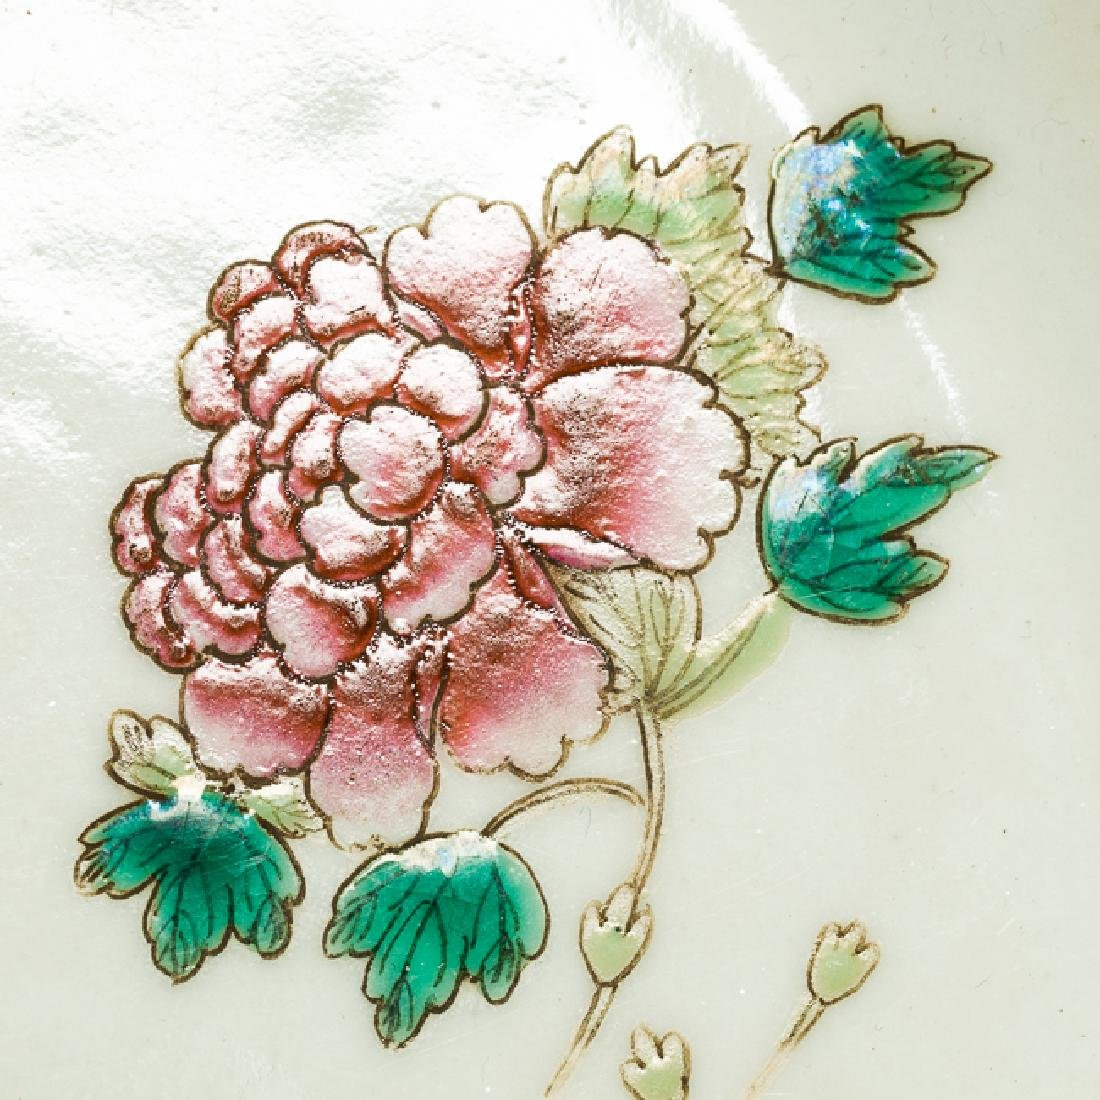 Chinese Antique Famille Rose Porcelain Dish, Qing - 6